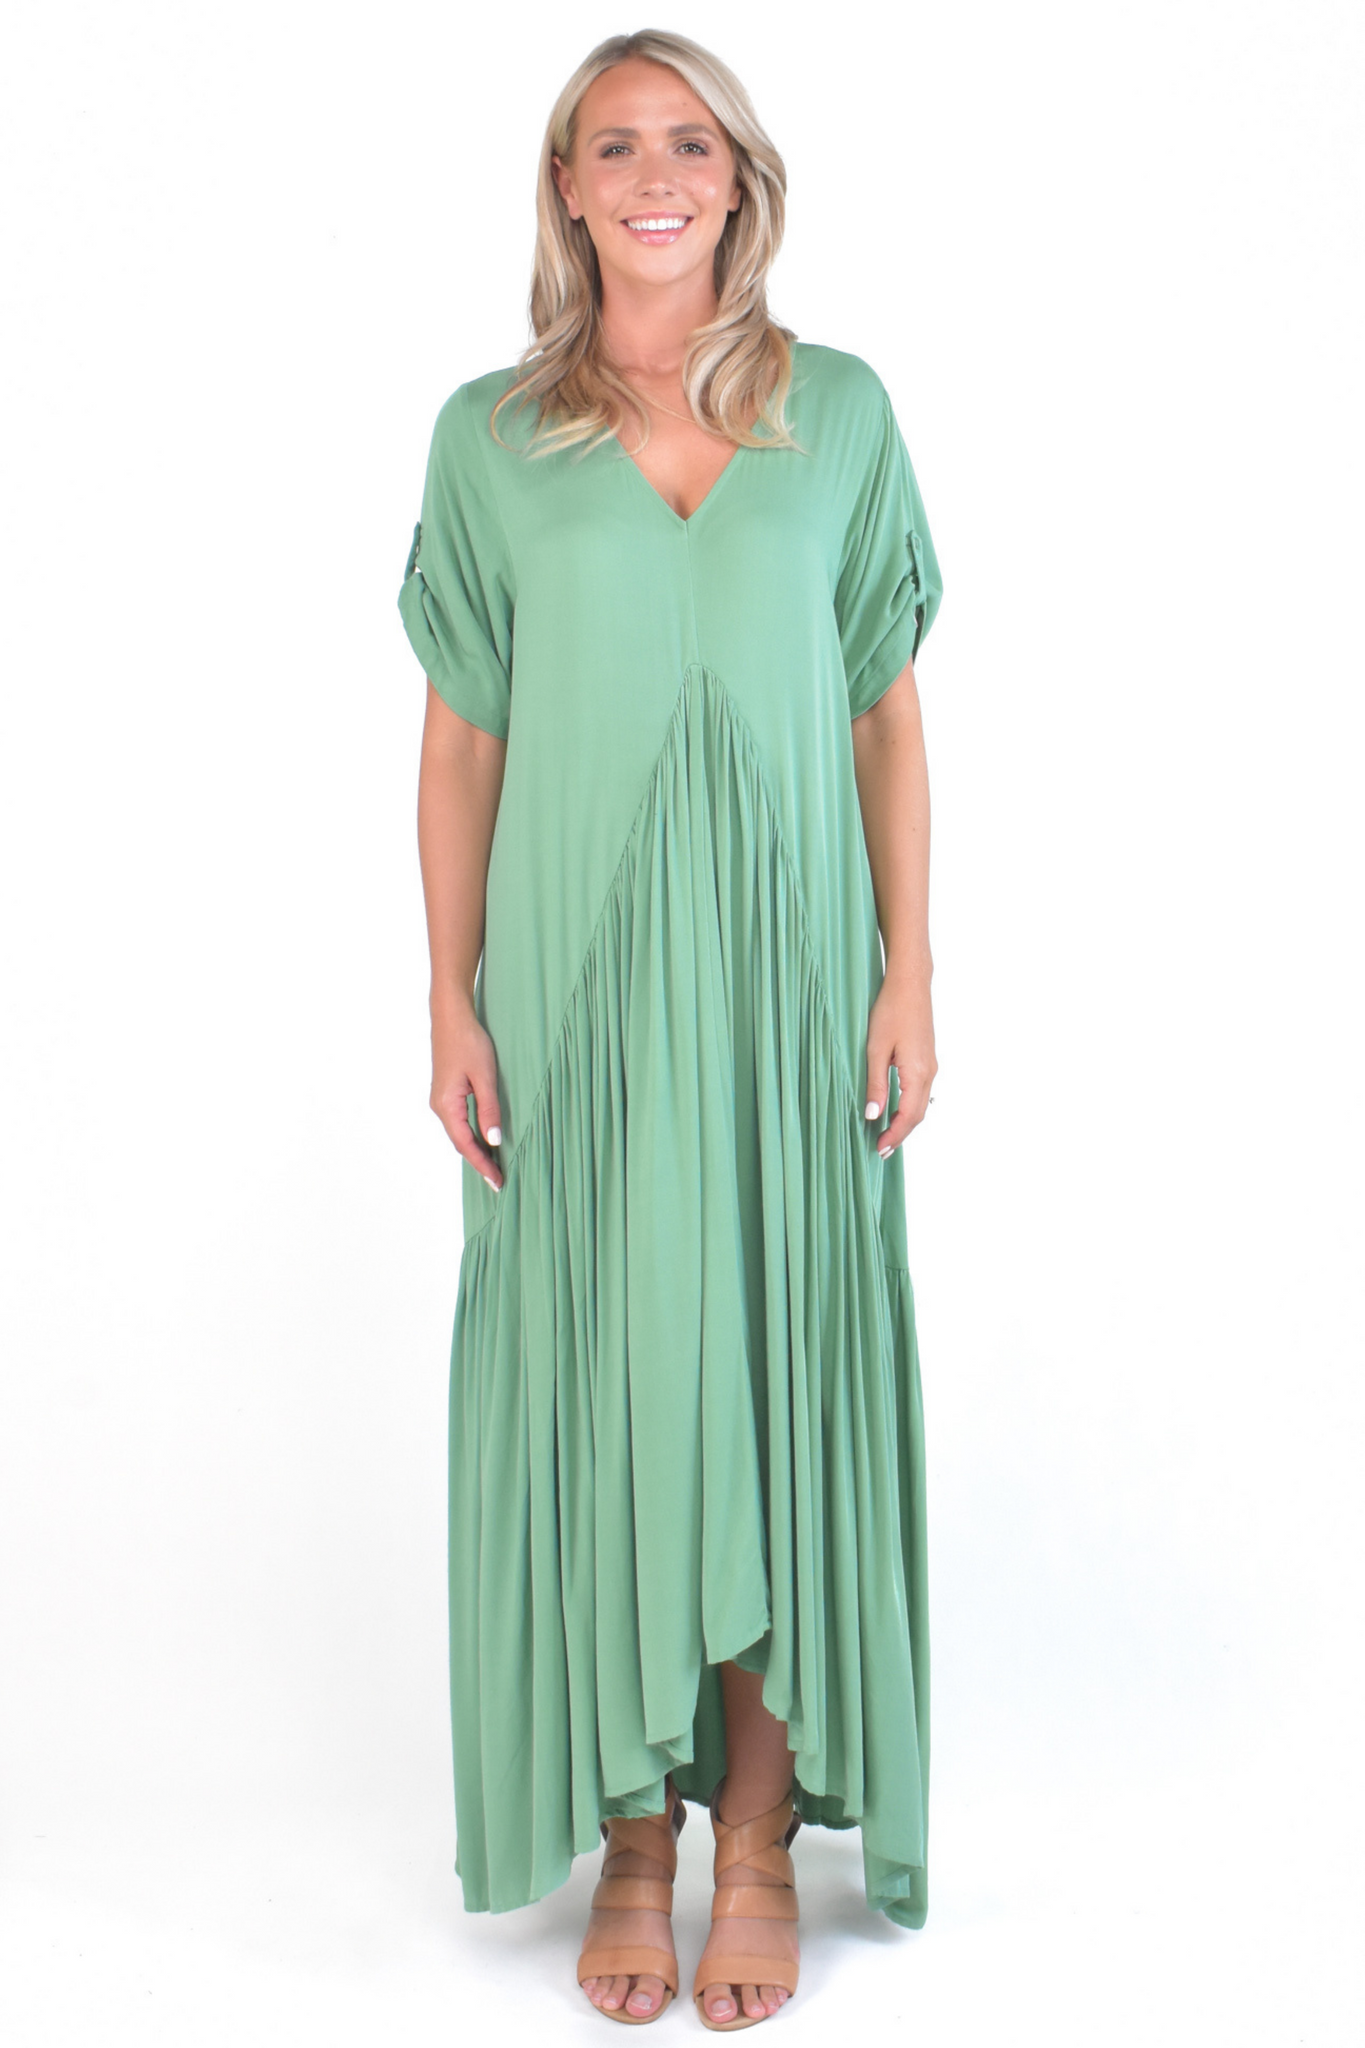 Peak Maxi Dress in Cactus